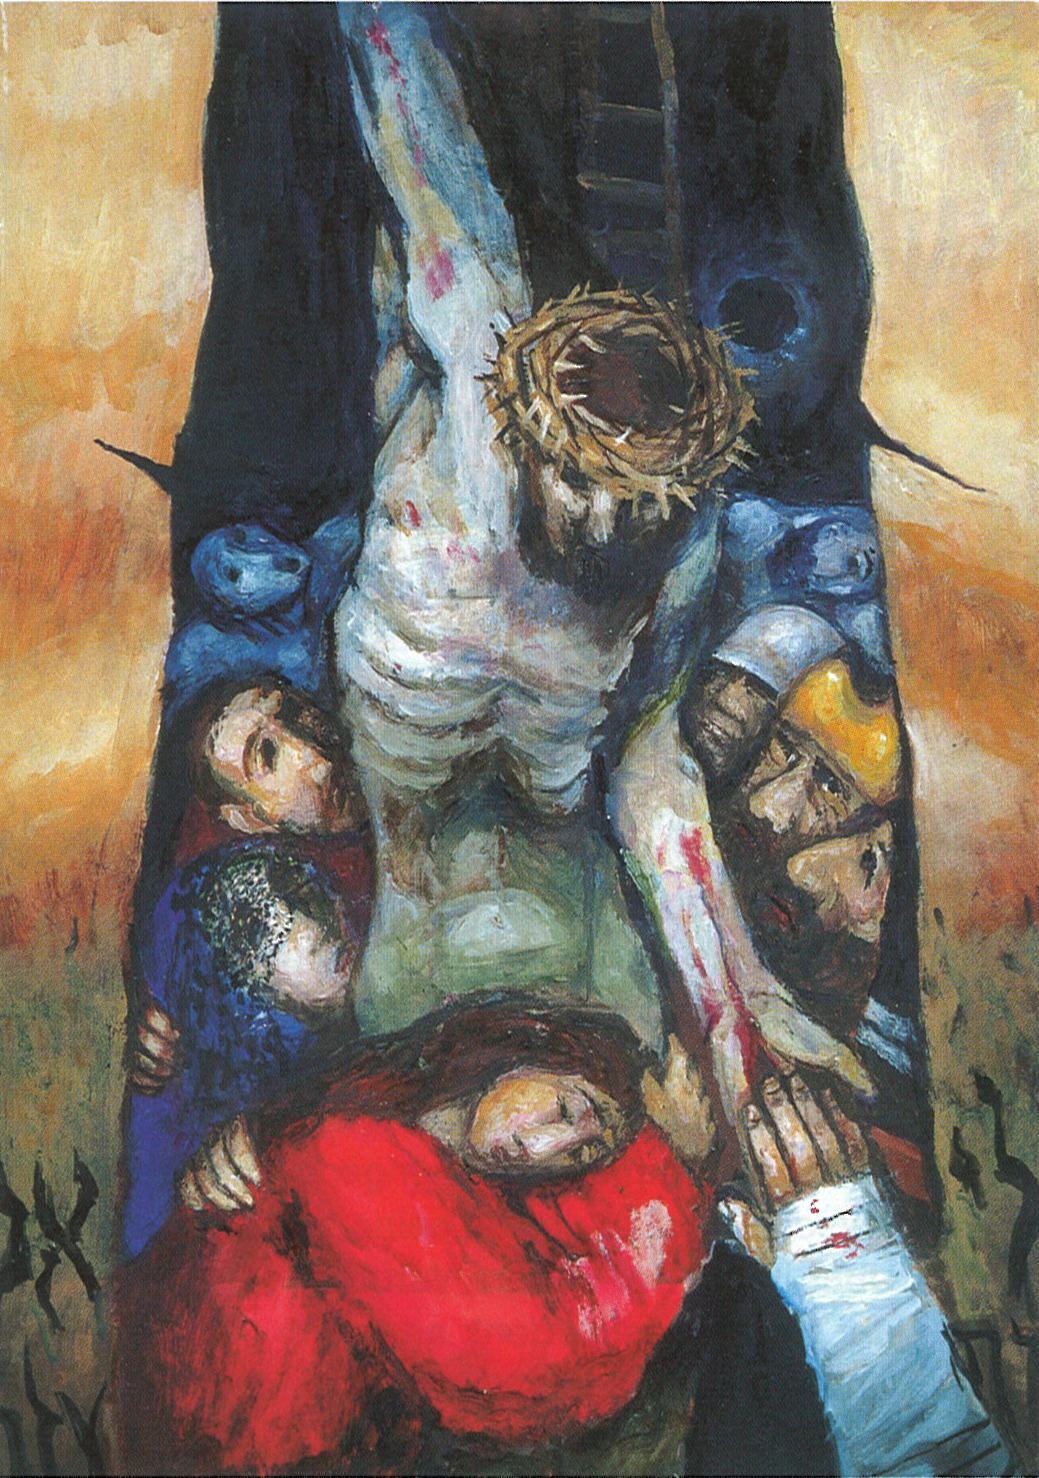 island life- in a monastery: PRIEST-ARTIST Chagall Crucifixion